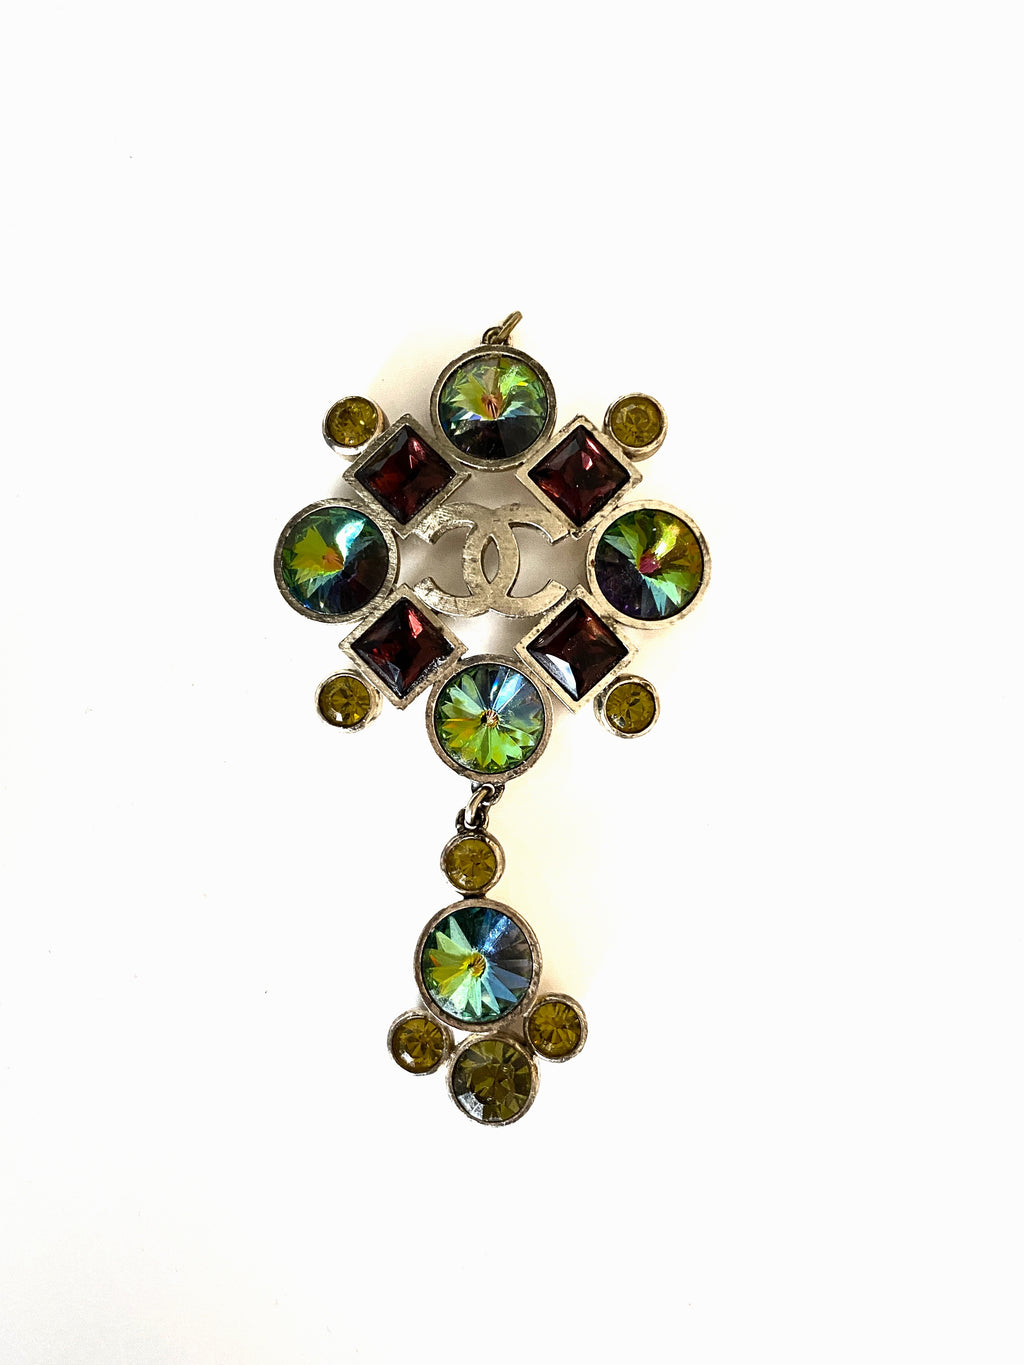 chanel pendant with CC logo, multi stones , red green and yellow stones, silver tone hardware